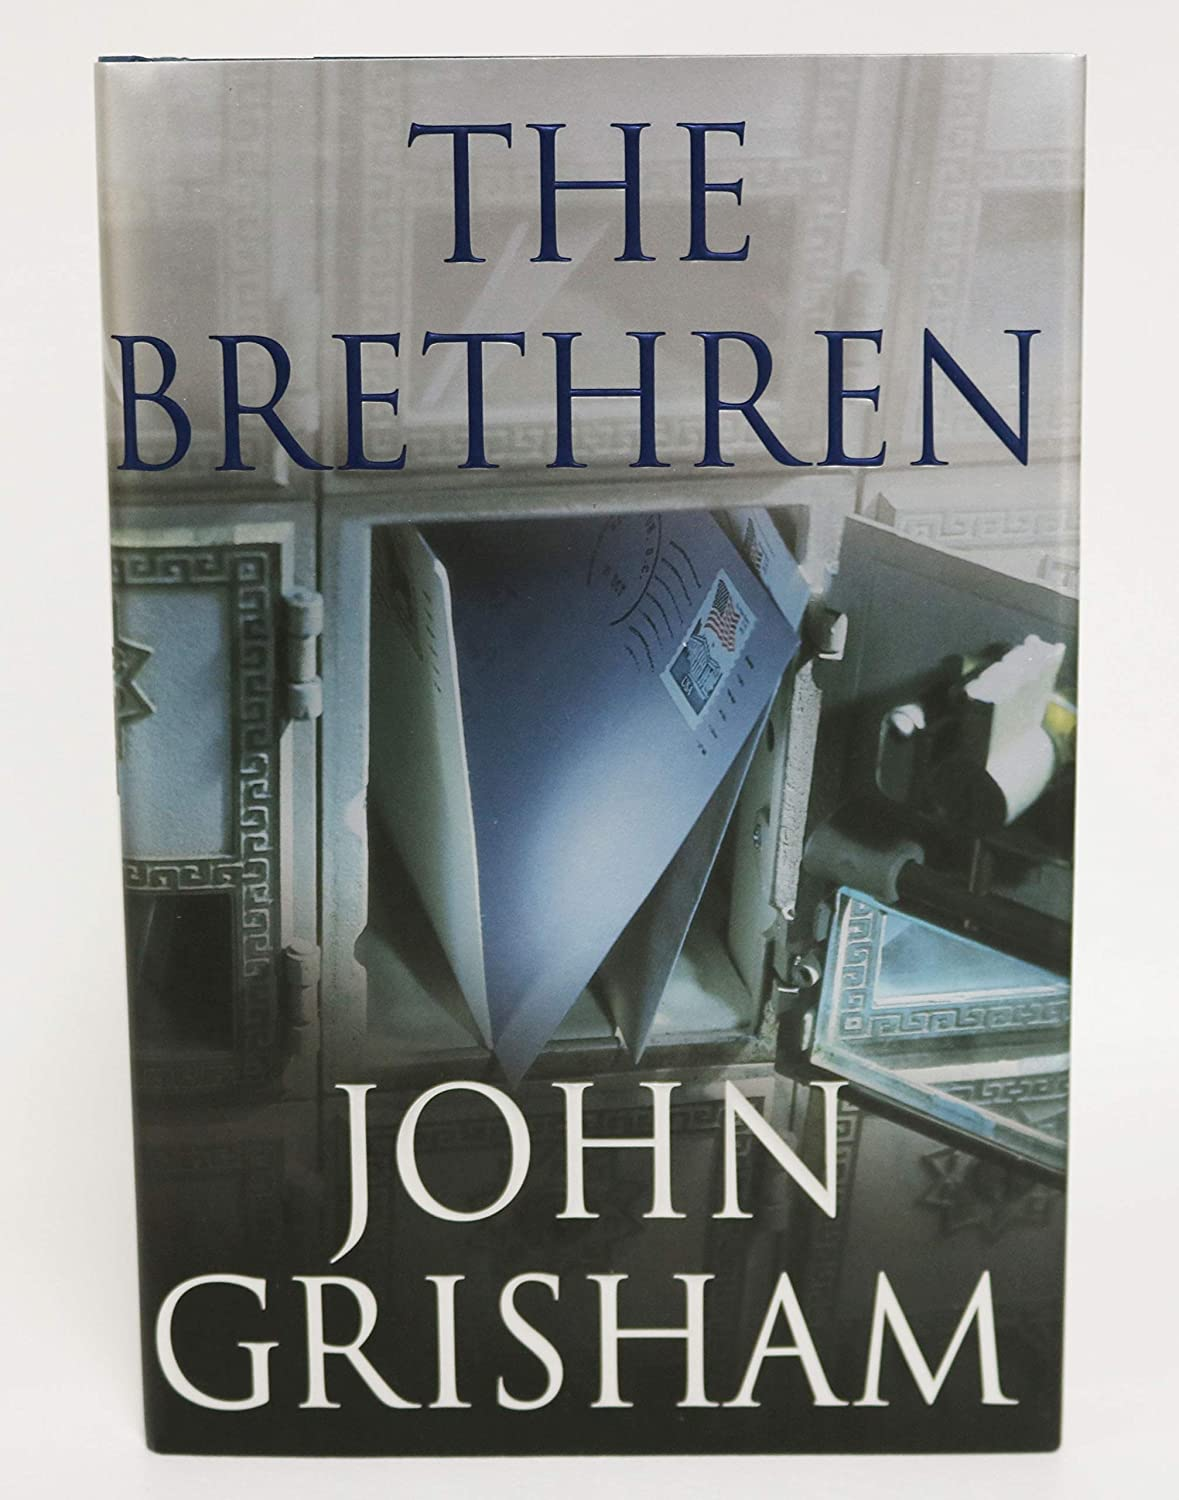 John Grisham Signed Autographed 1st Edition /'The Brethren/' HC Hard Cover Book wCard From Signing